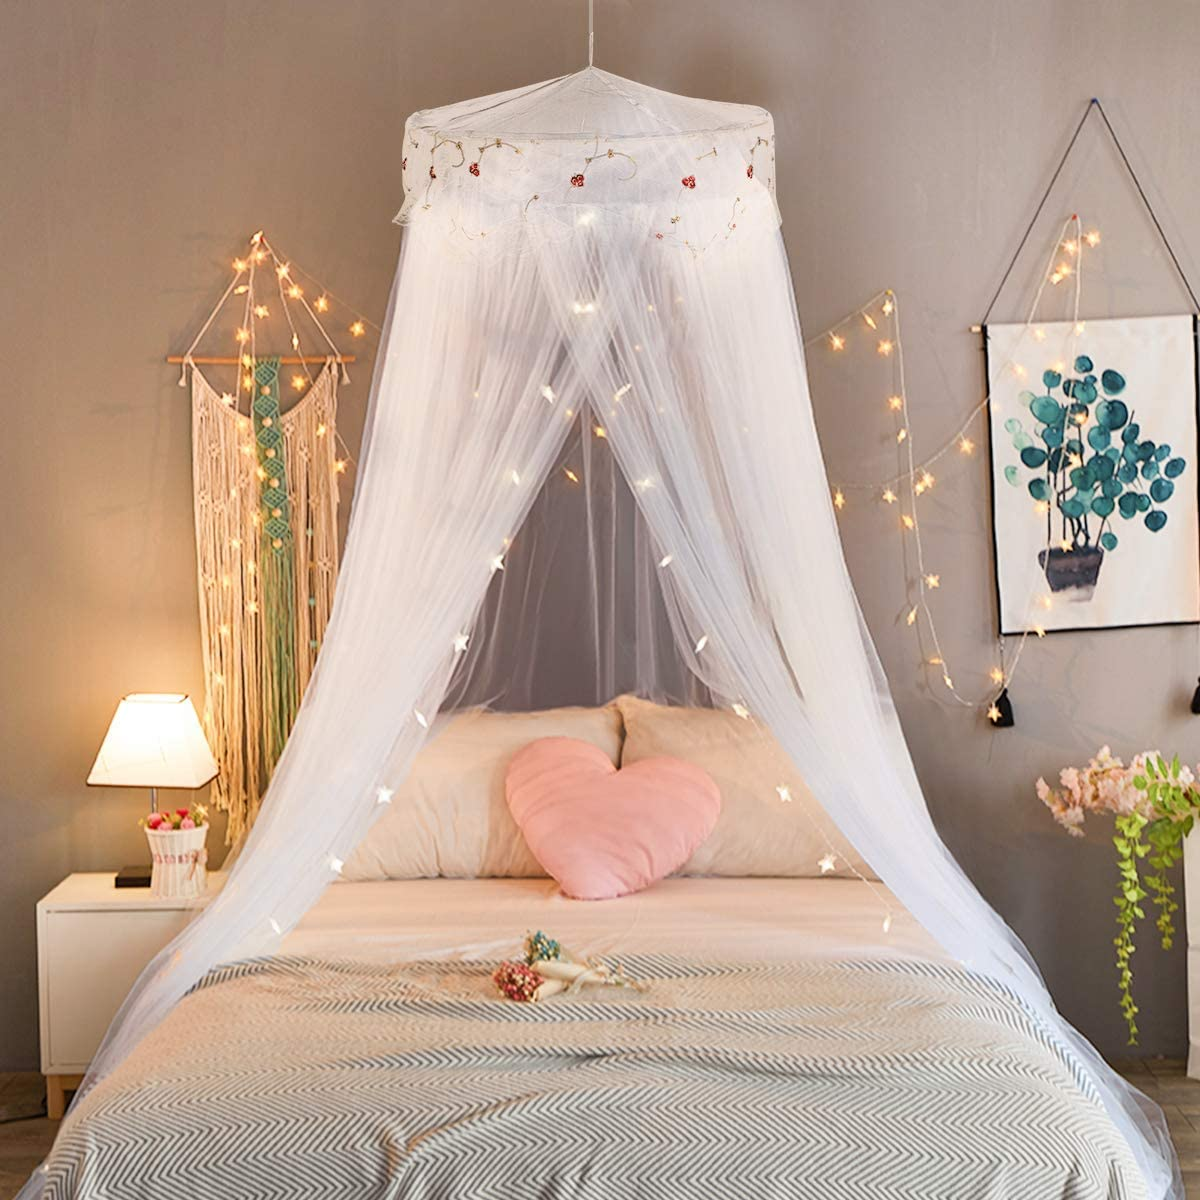 - Amazon.com: Jeteven Girl Bed Canopy Lace Mosquito Net For Girls